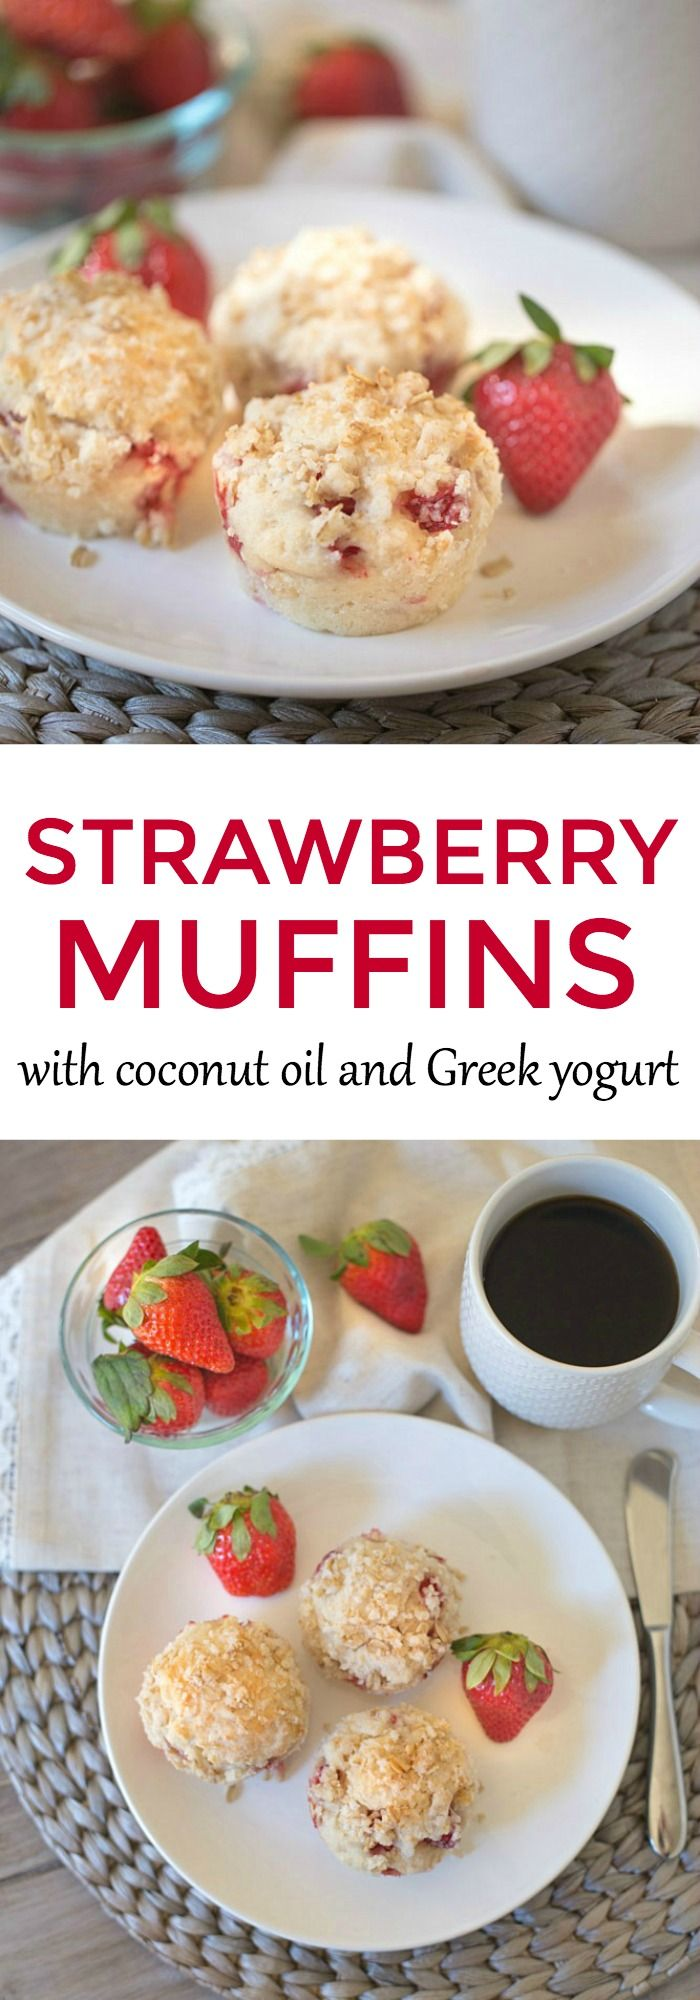 Strawberry Muffins made with Coconut Oil and Greek Yogurt. No butter. Soft and moist and full of fresh berries!